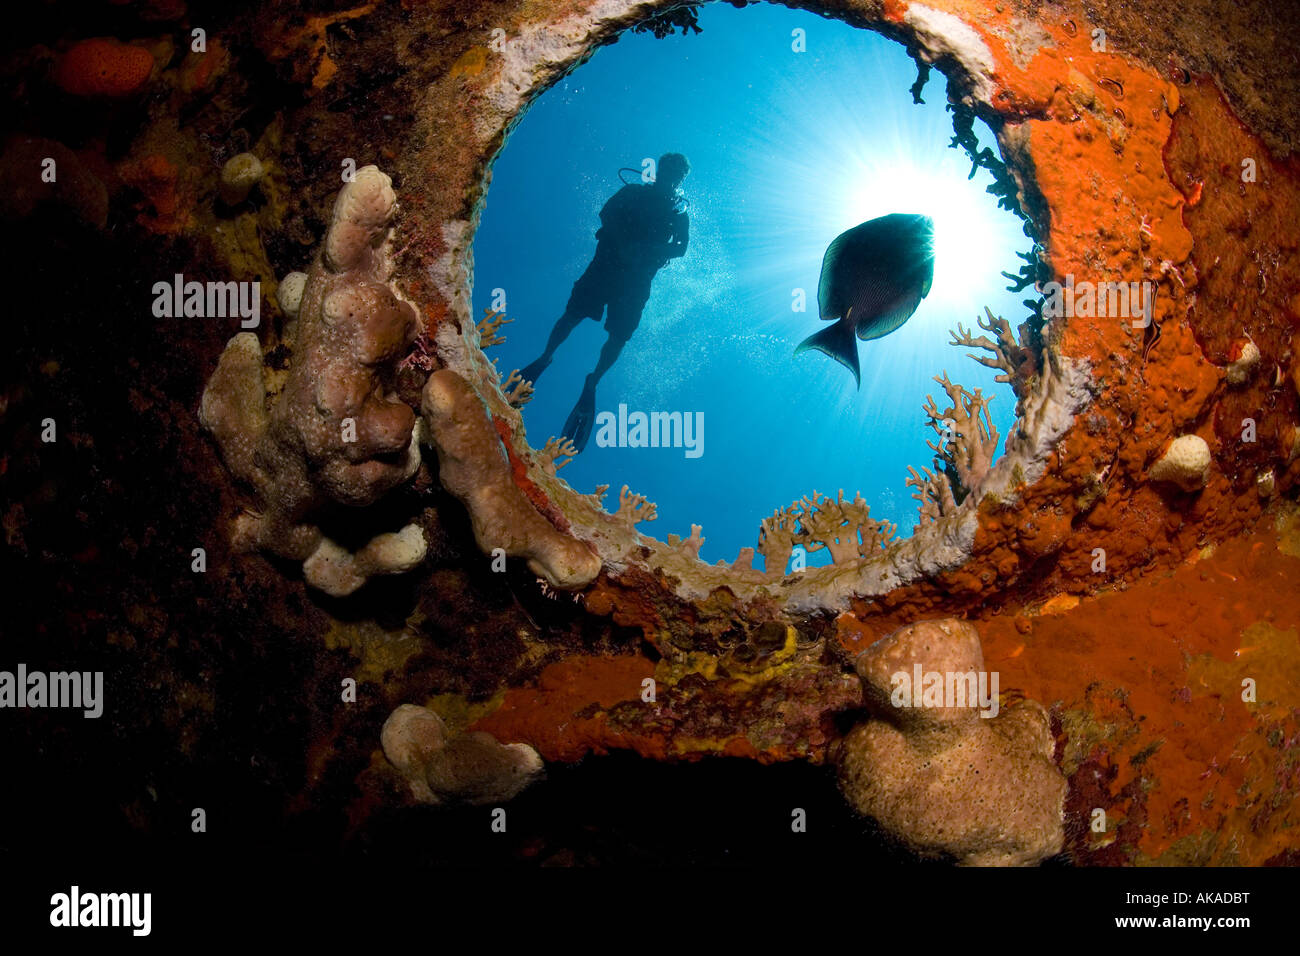 Male scuba diver is viewed through the underwater porthole of the HMS Endymion shipwreck.. - Stock Image